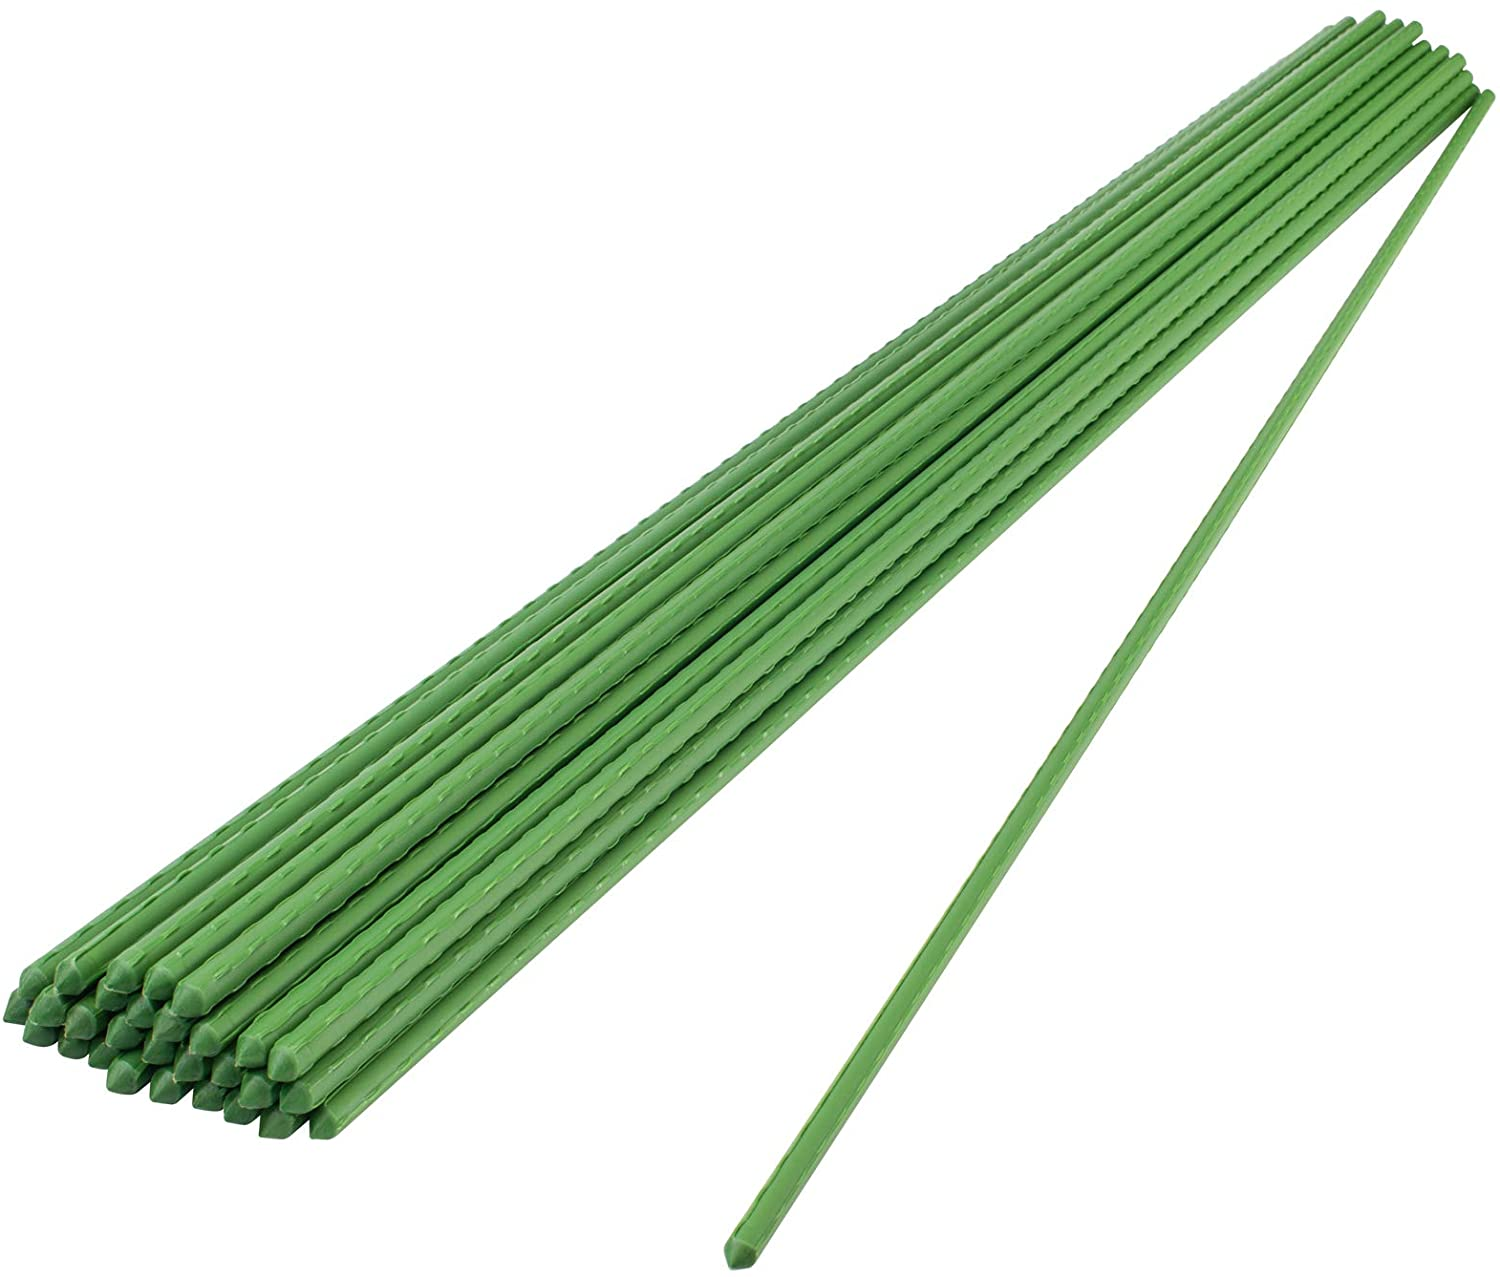 YOHEER Garden Stakes,24 Inches Sturdy Plastic Coated Steel Plant Sticks Support for Growing Trees,Natural Climbing Plants,Vine Plants,Shrubs (Pack of 30)